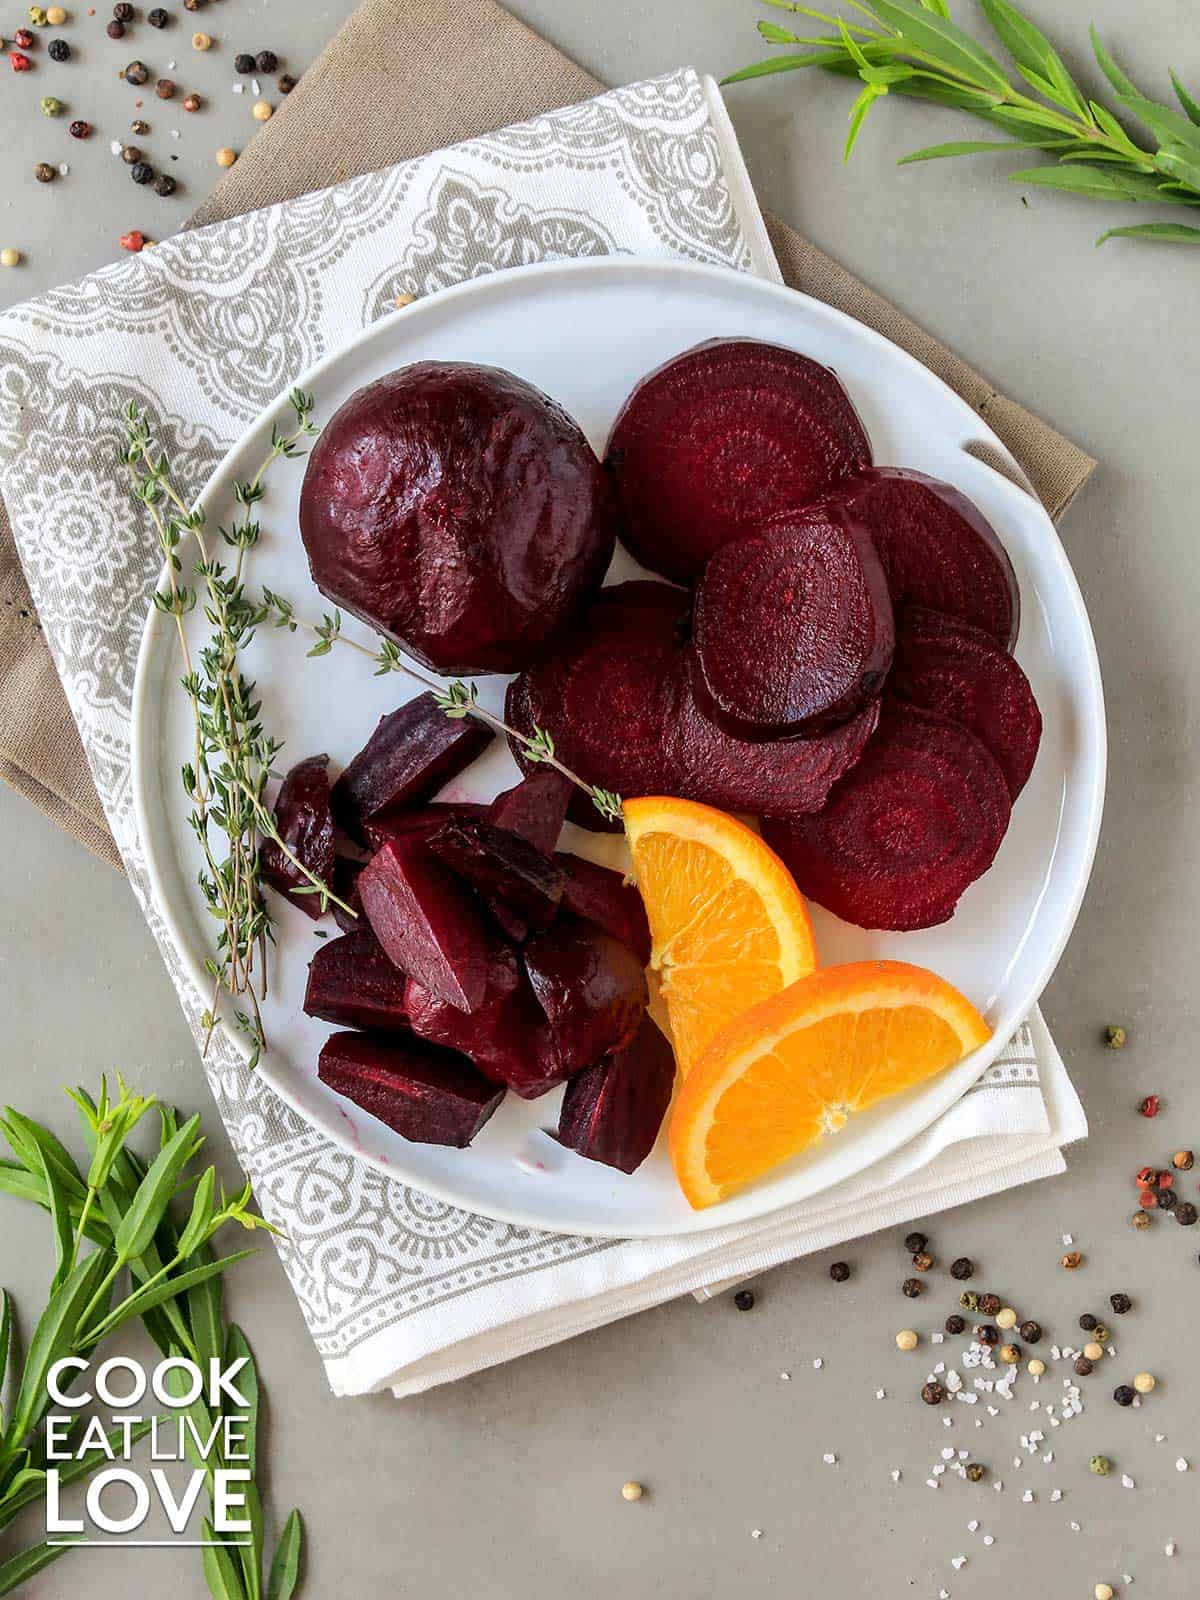 Beets on a plate garnished with orange slices and fresh herbs